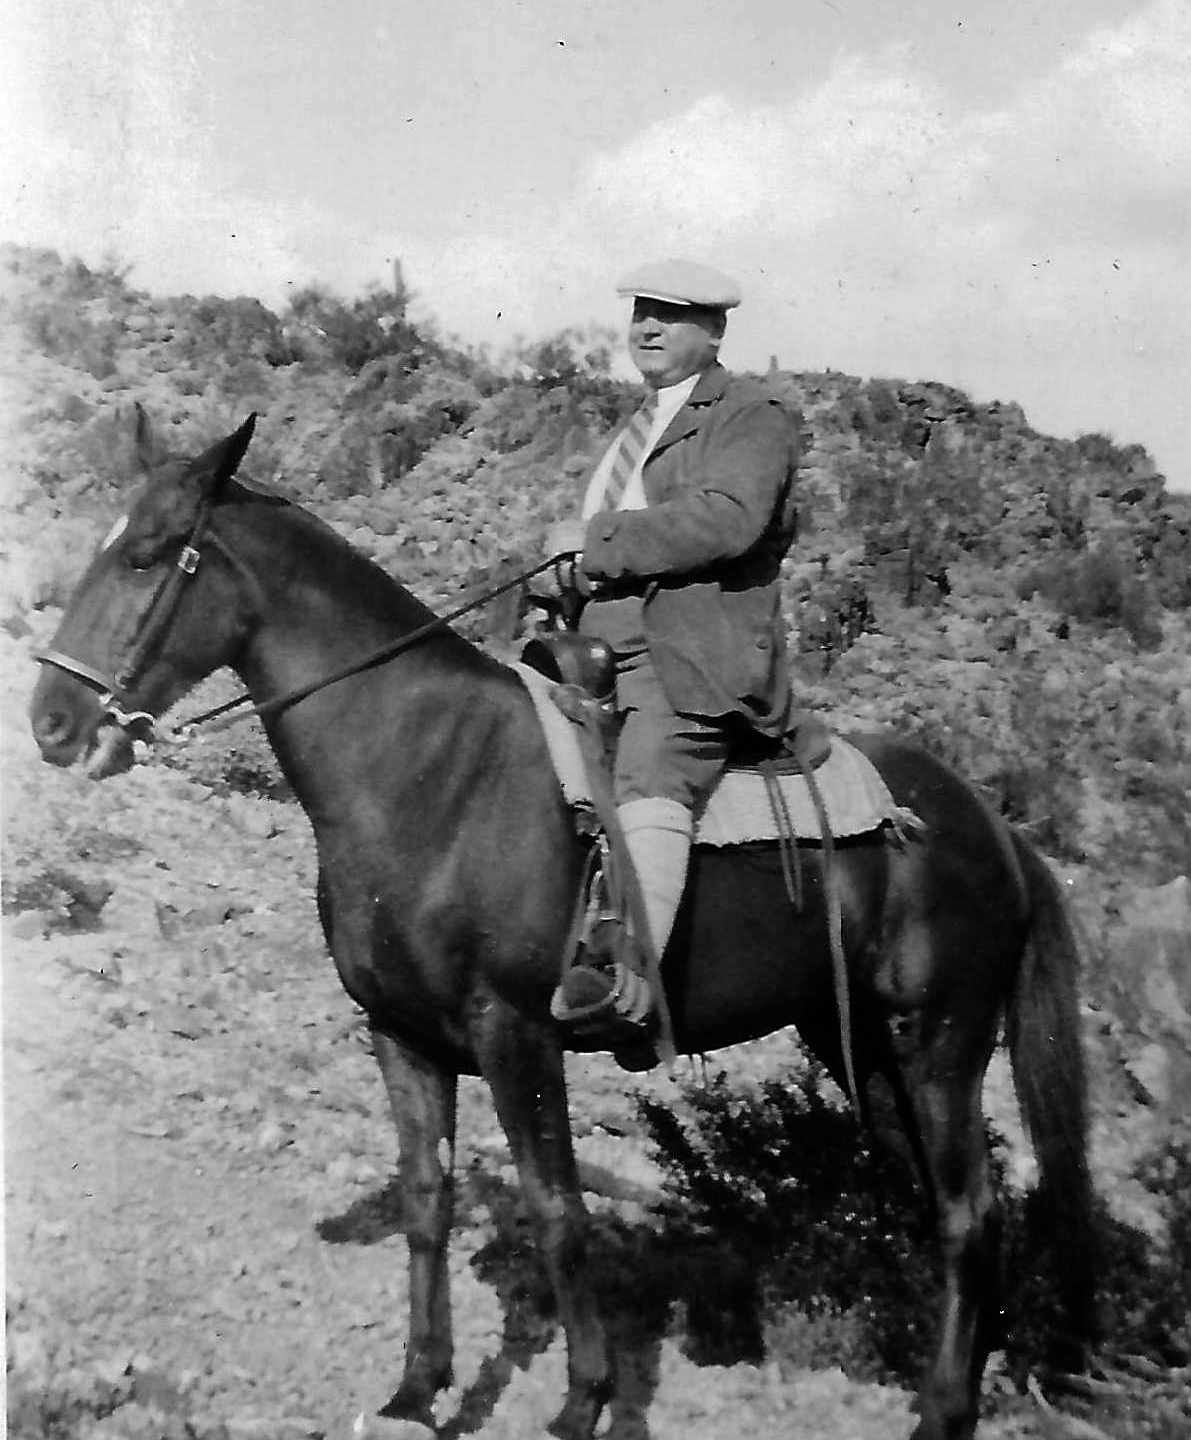 Engineer on horseback: New memoir